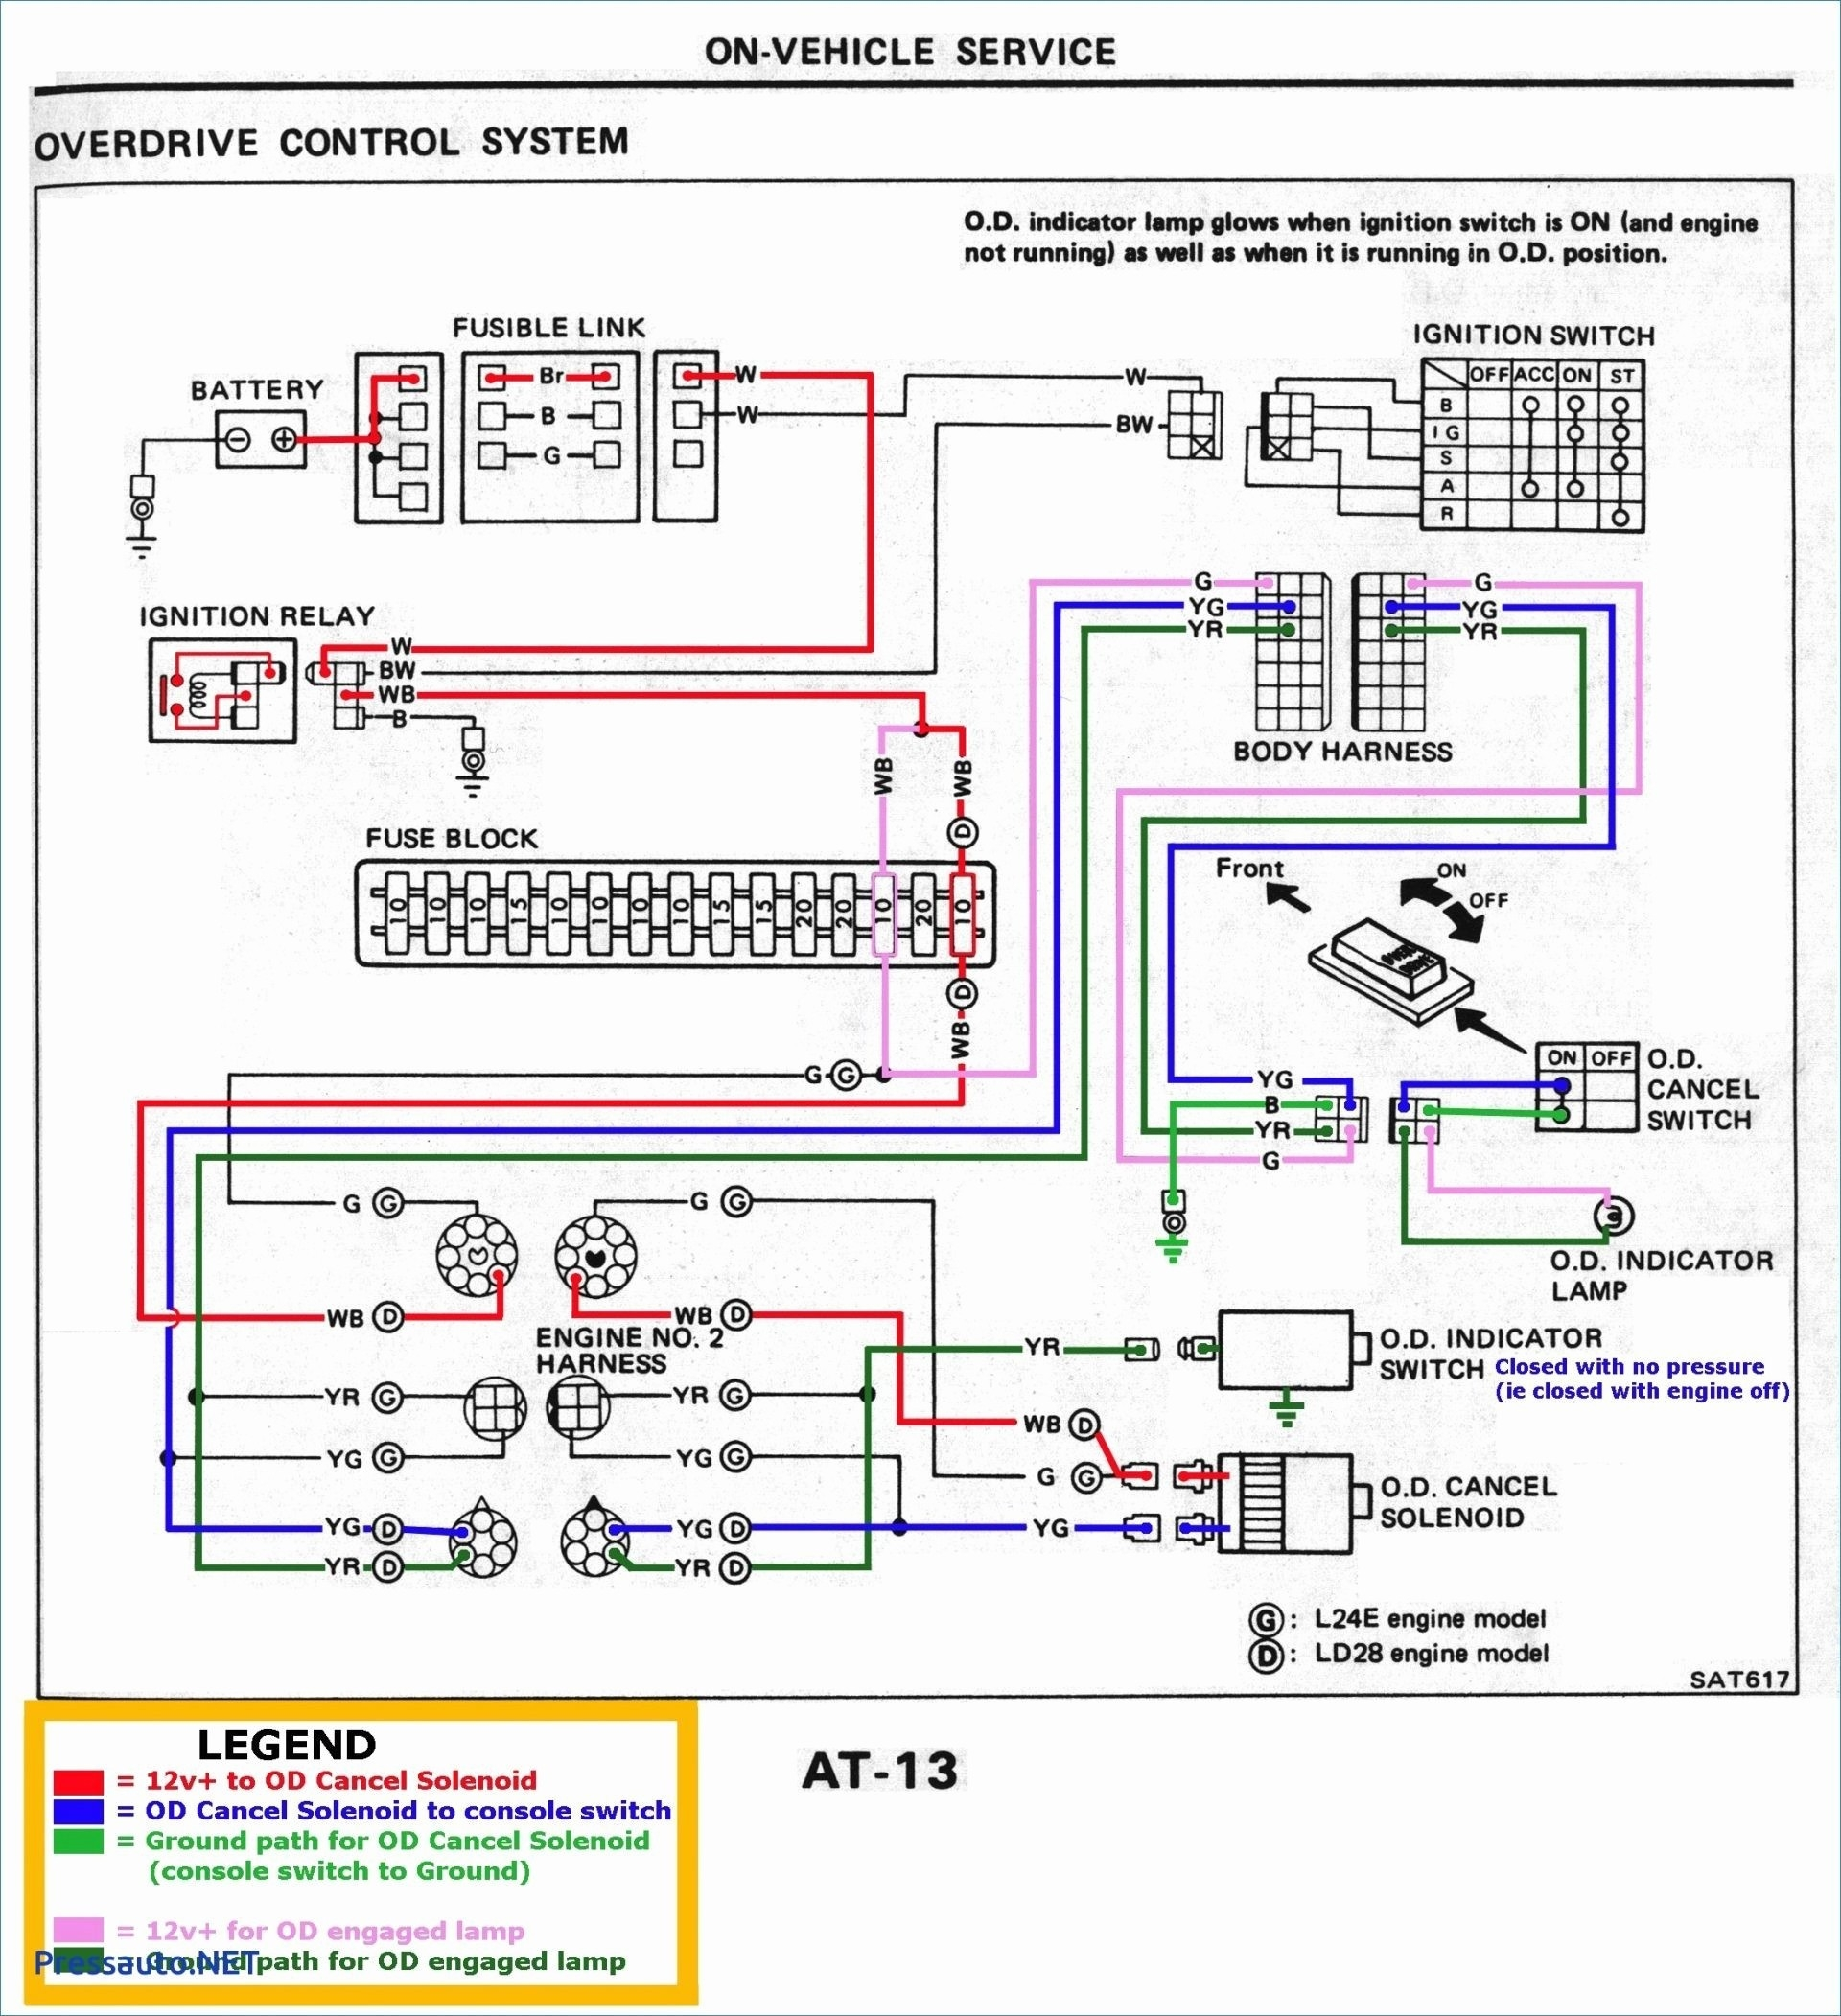 [DIAGRAM_5FD]  LO_8263] Nippondenso Alternator Wiring Diagram Locostbuilders Co Uk Car Schematic  Wiring | Denso Alternator Yanmar Wiring Diagram |  | Norab Over Heeve Mohammedshrine Librar Wiring 101